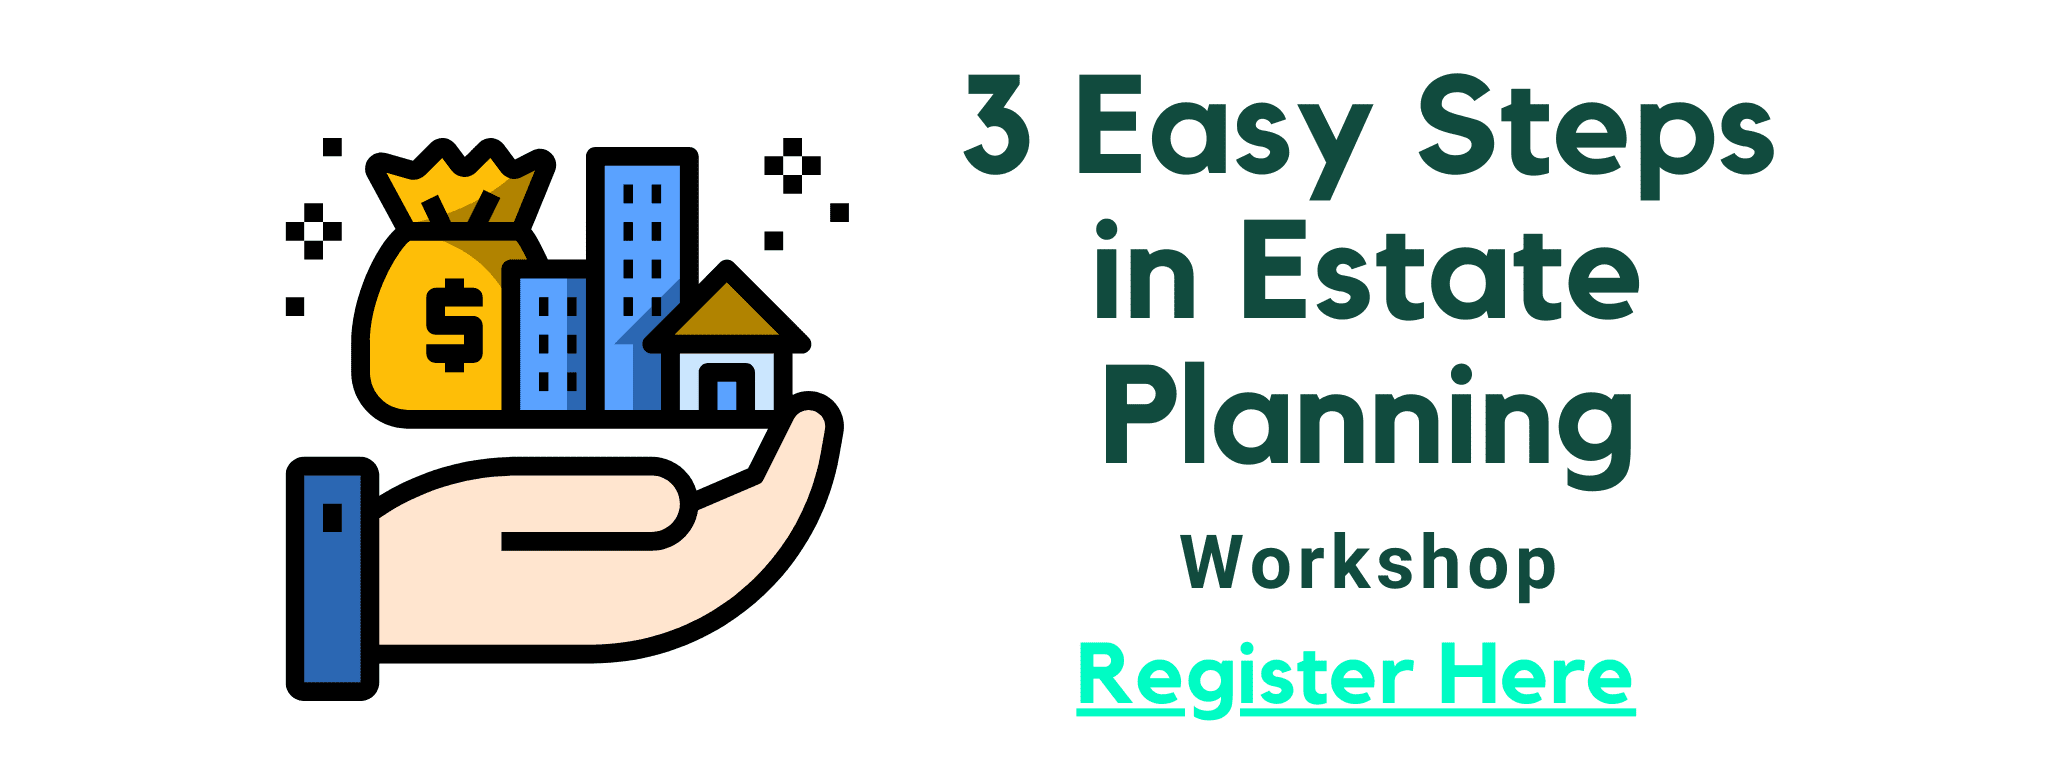 3 easy steps in estate planning workshop